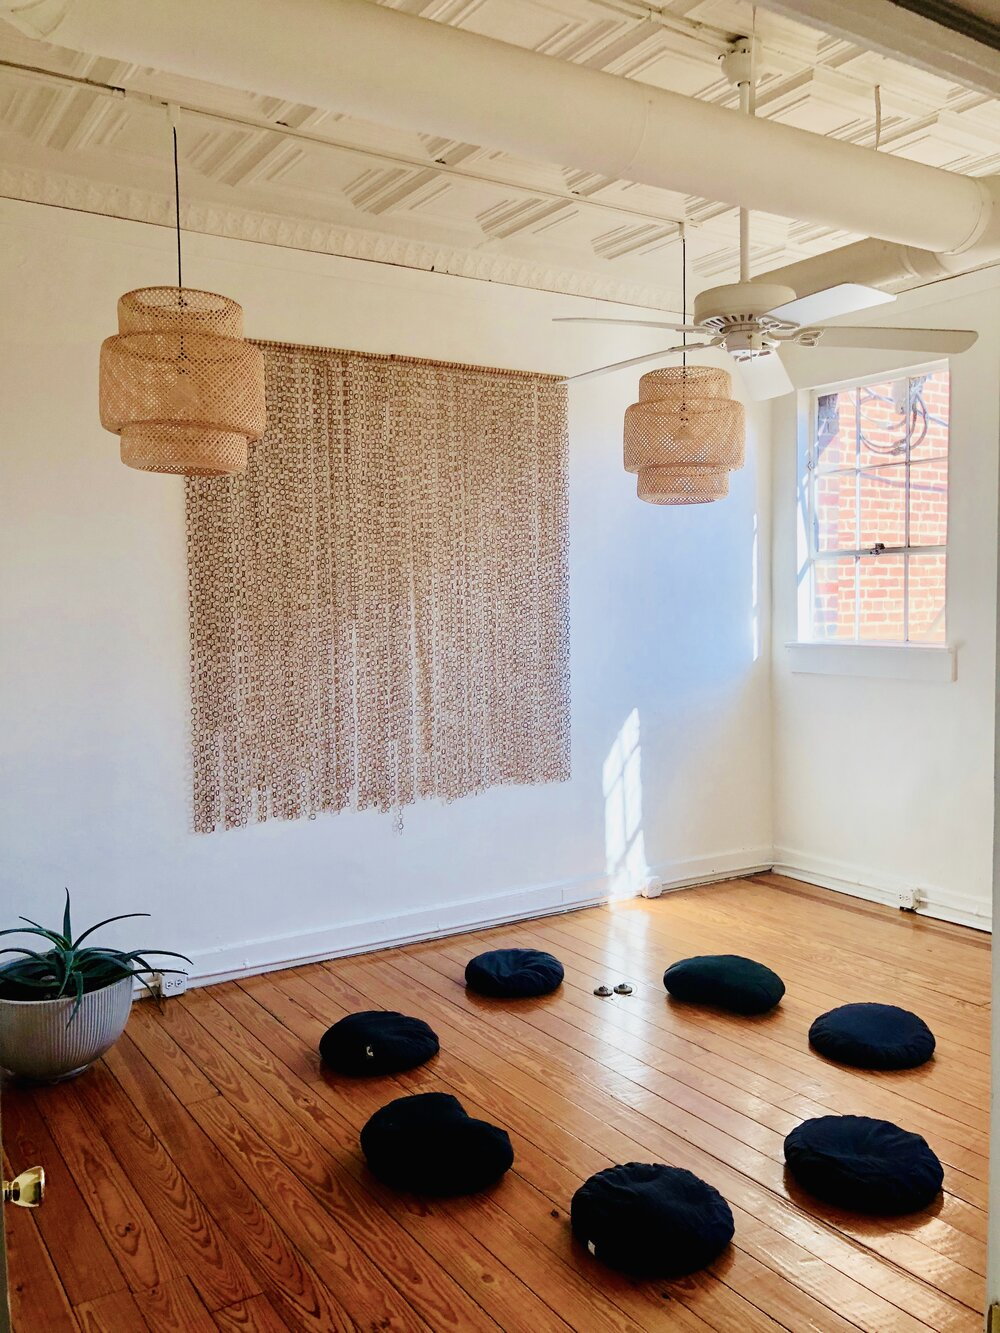 "Feb 20<br/><a href=""http://www.ashtangayogarichmond.com/workshops-and-events/"">Seeking the Silence Within</a>"